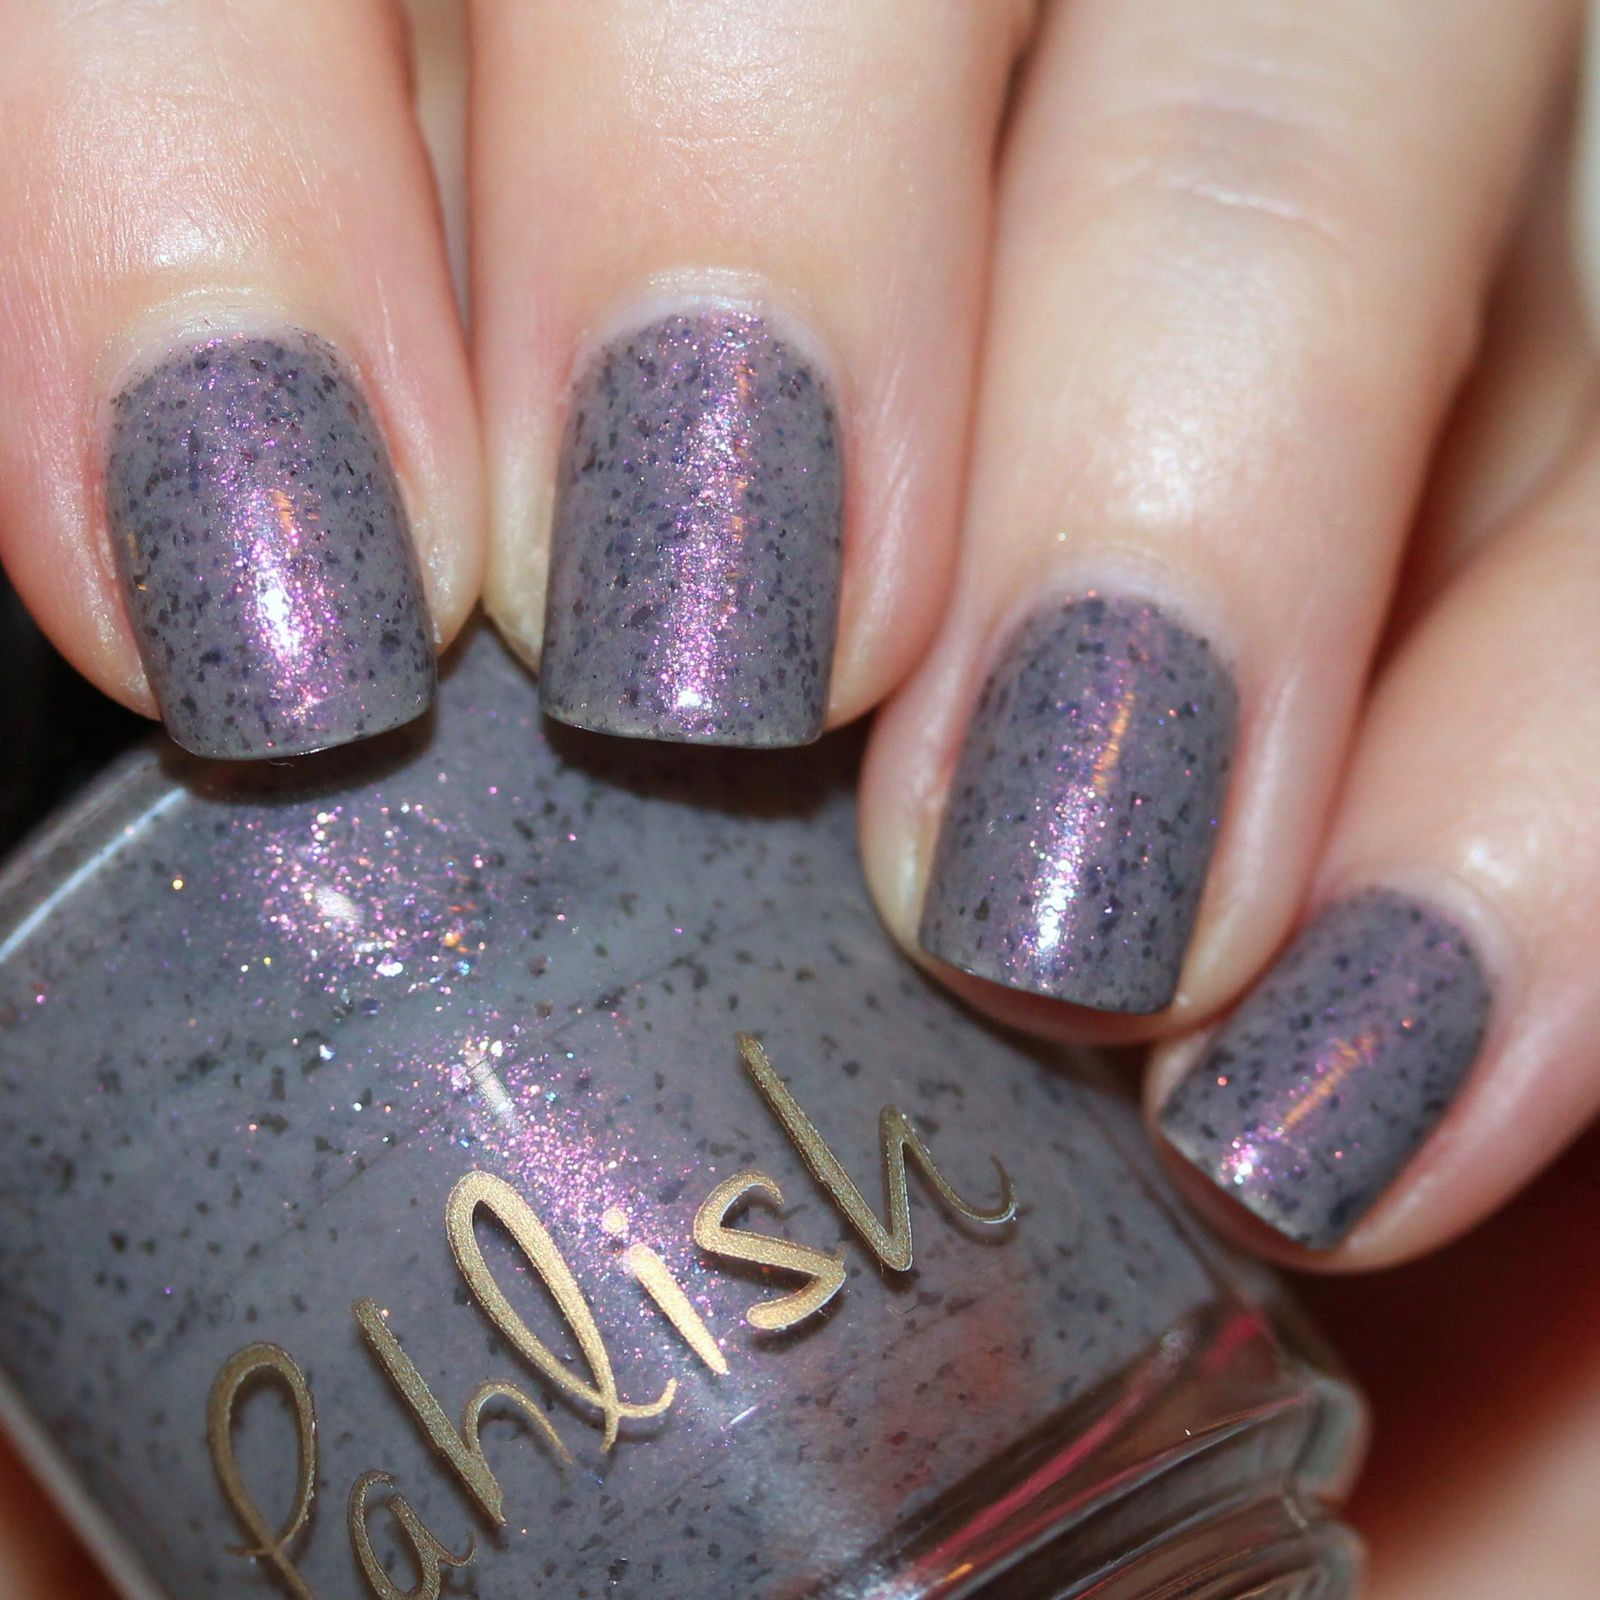 Duri Rejuvacote / Pahlish Mind Like a Diamond / Sally Hansen Miracle Gel Top Coat